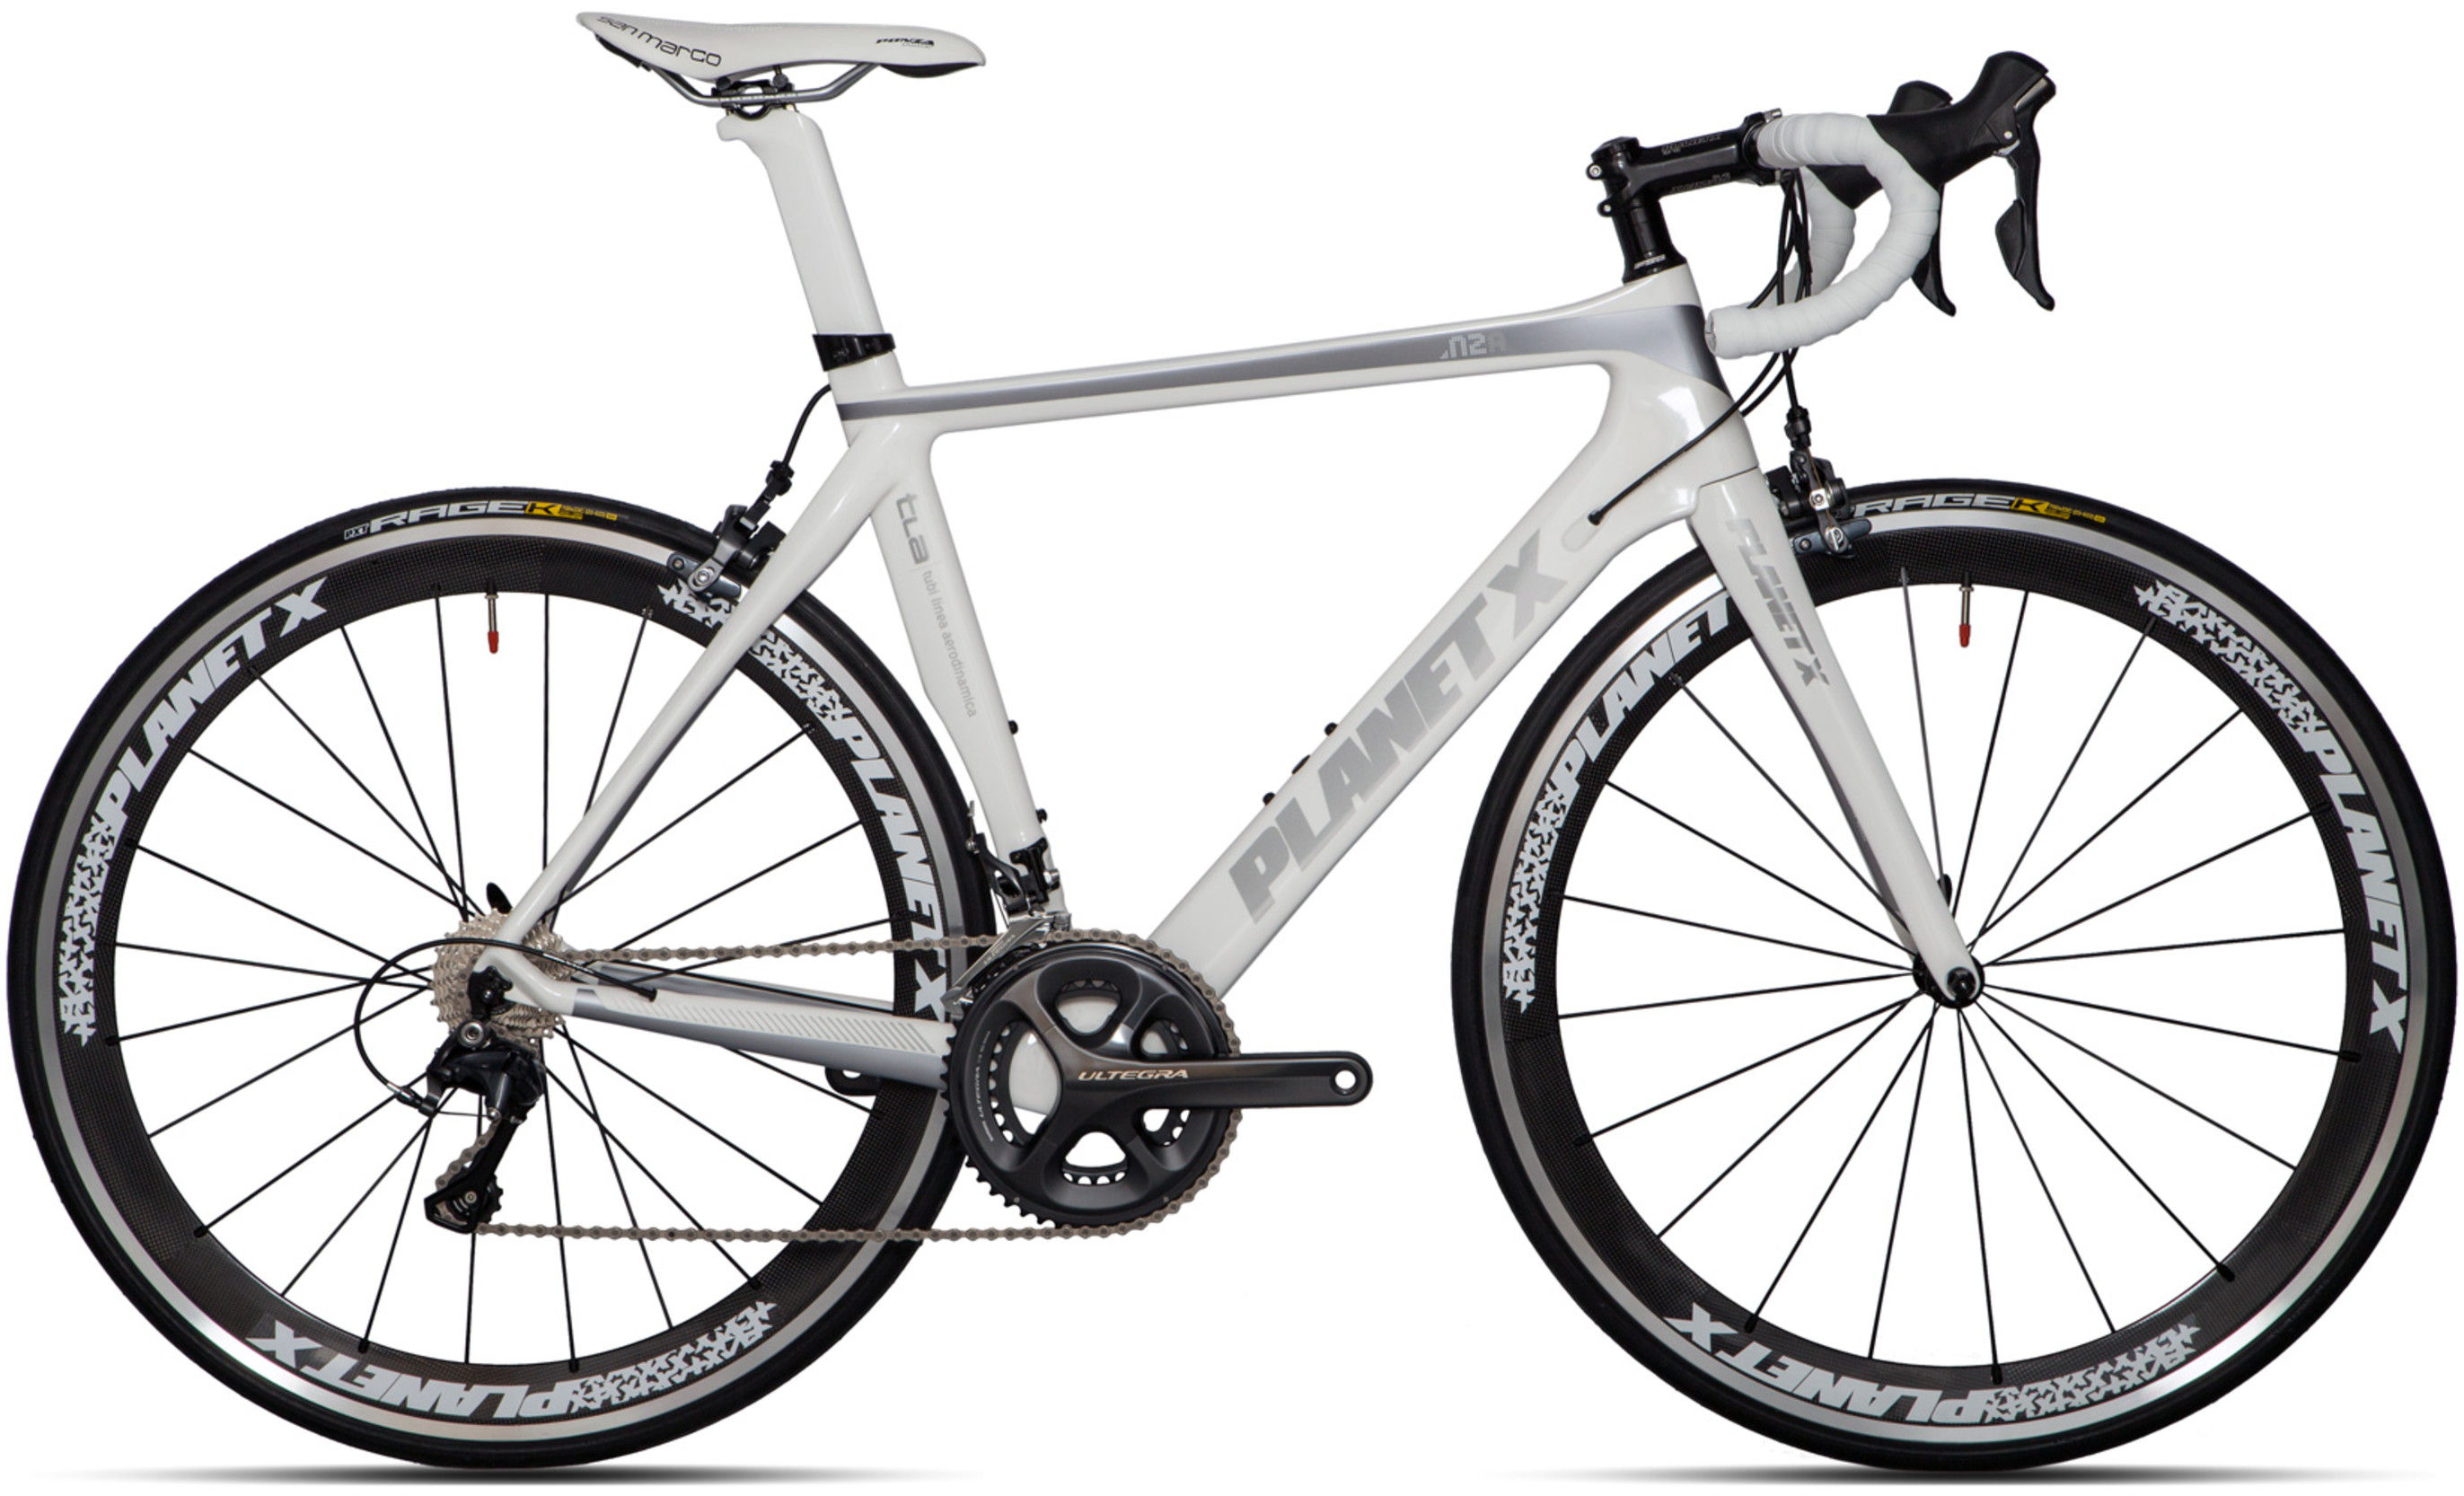 Planet X N2A Shimano Ultegra 6800 Carbon 2014 review - The Bike List